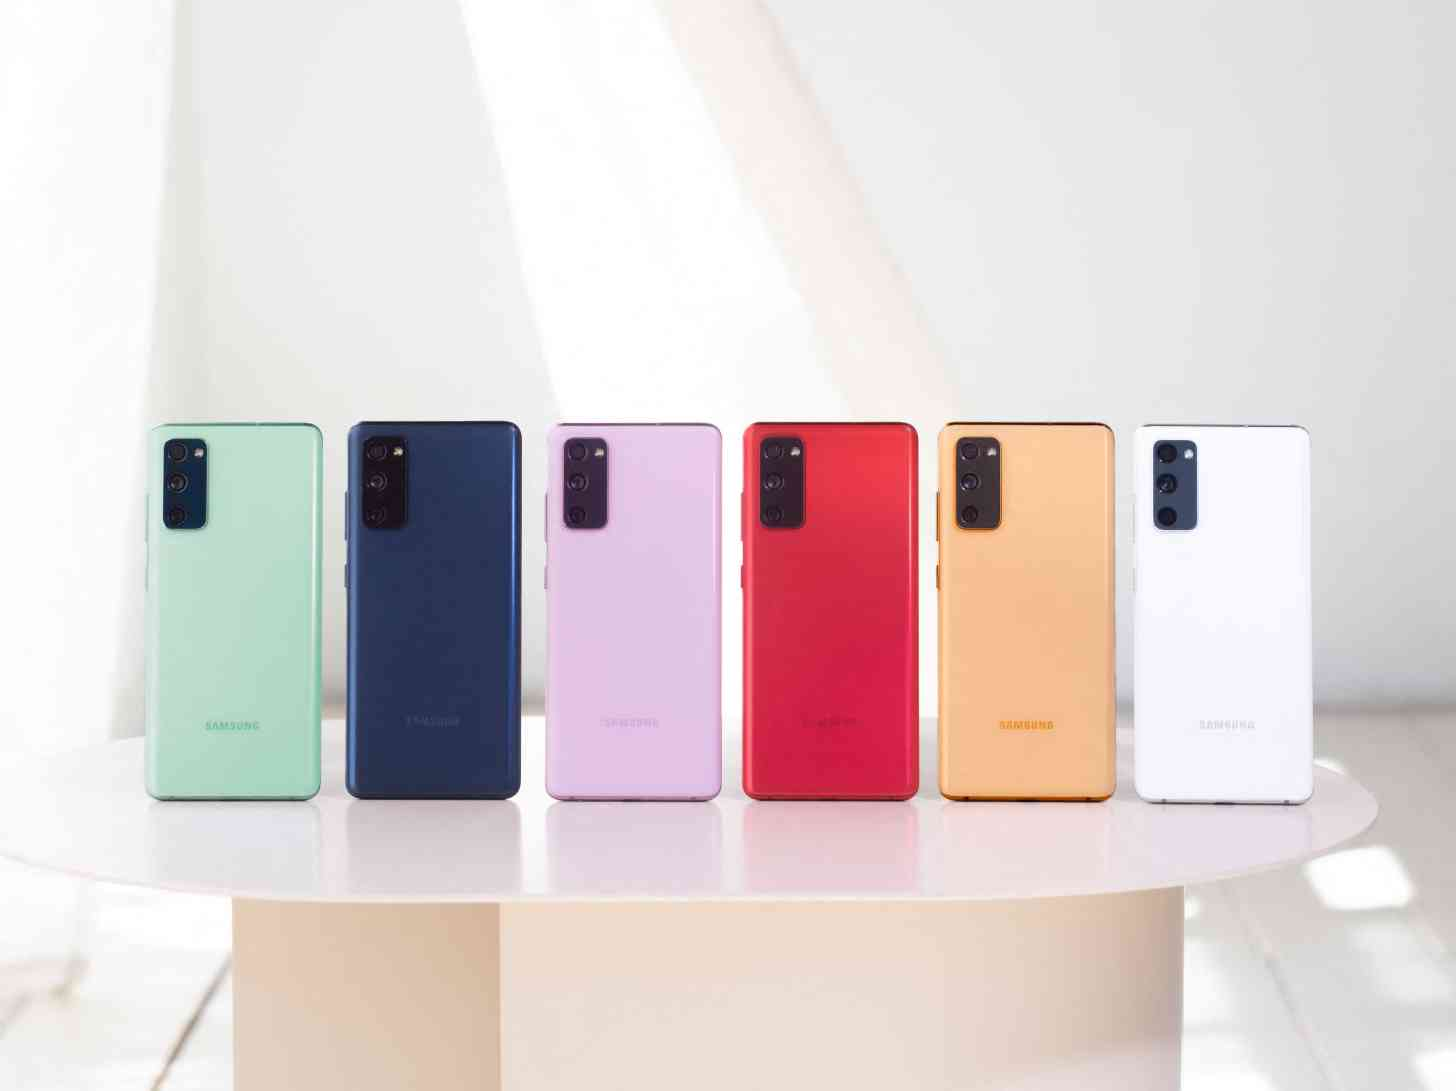 Samsung Galaxy S20 FE all colors